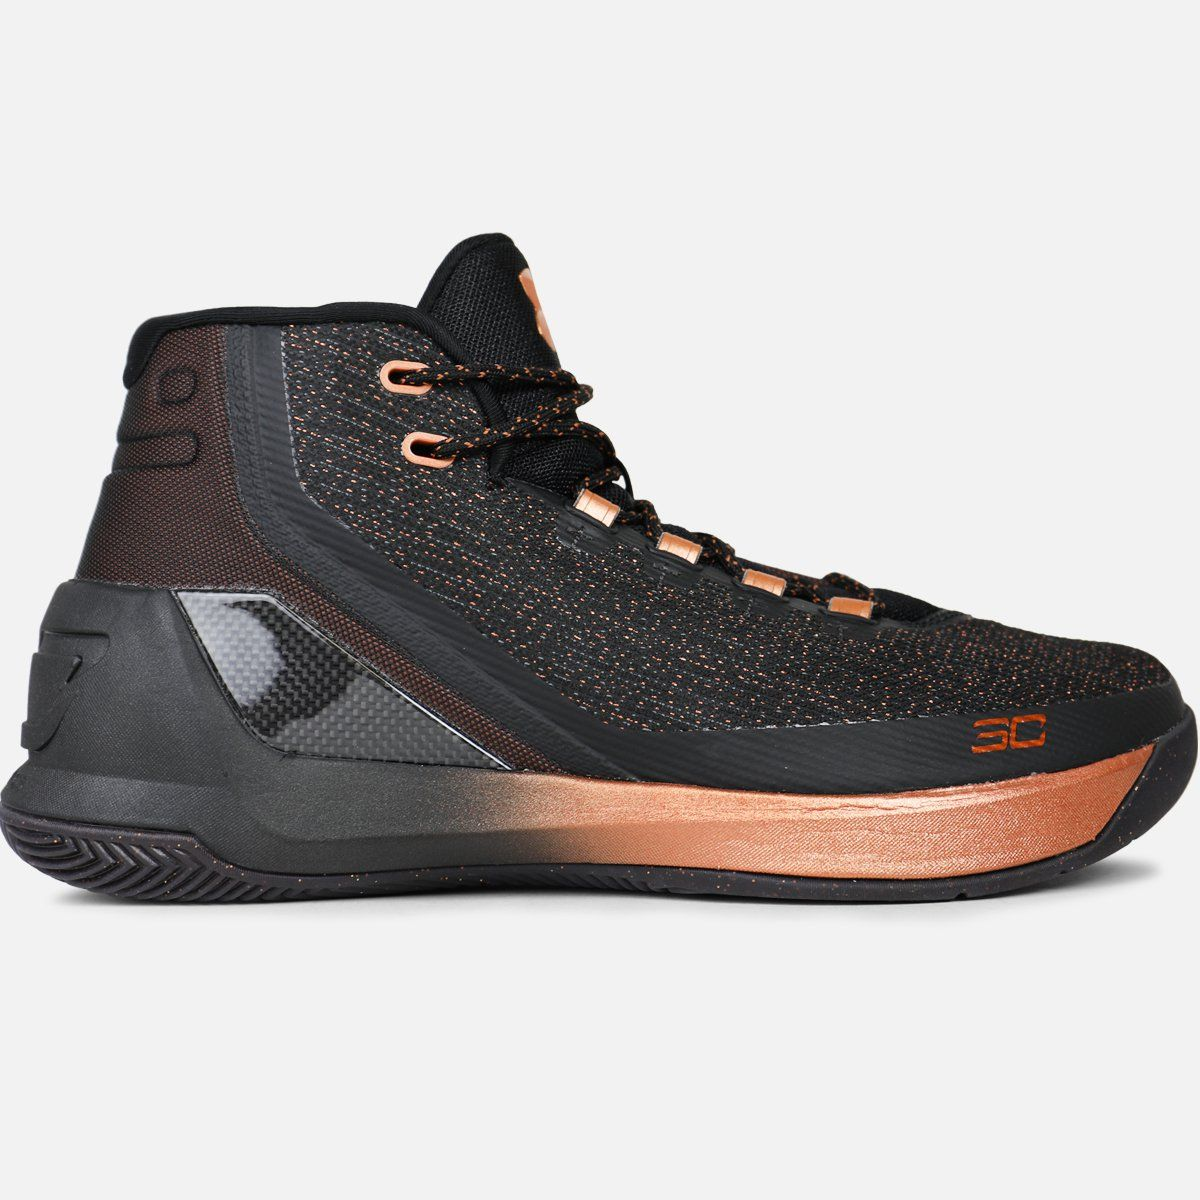 big sale f5bd9 5e232 The shoes are dressed in a black based upper with copper detailing all  throughout- Under Armour branding comes in copper on the outside of the  tongue.